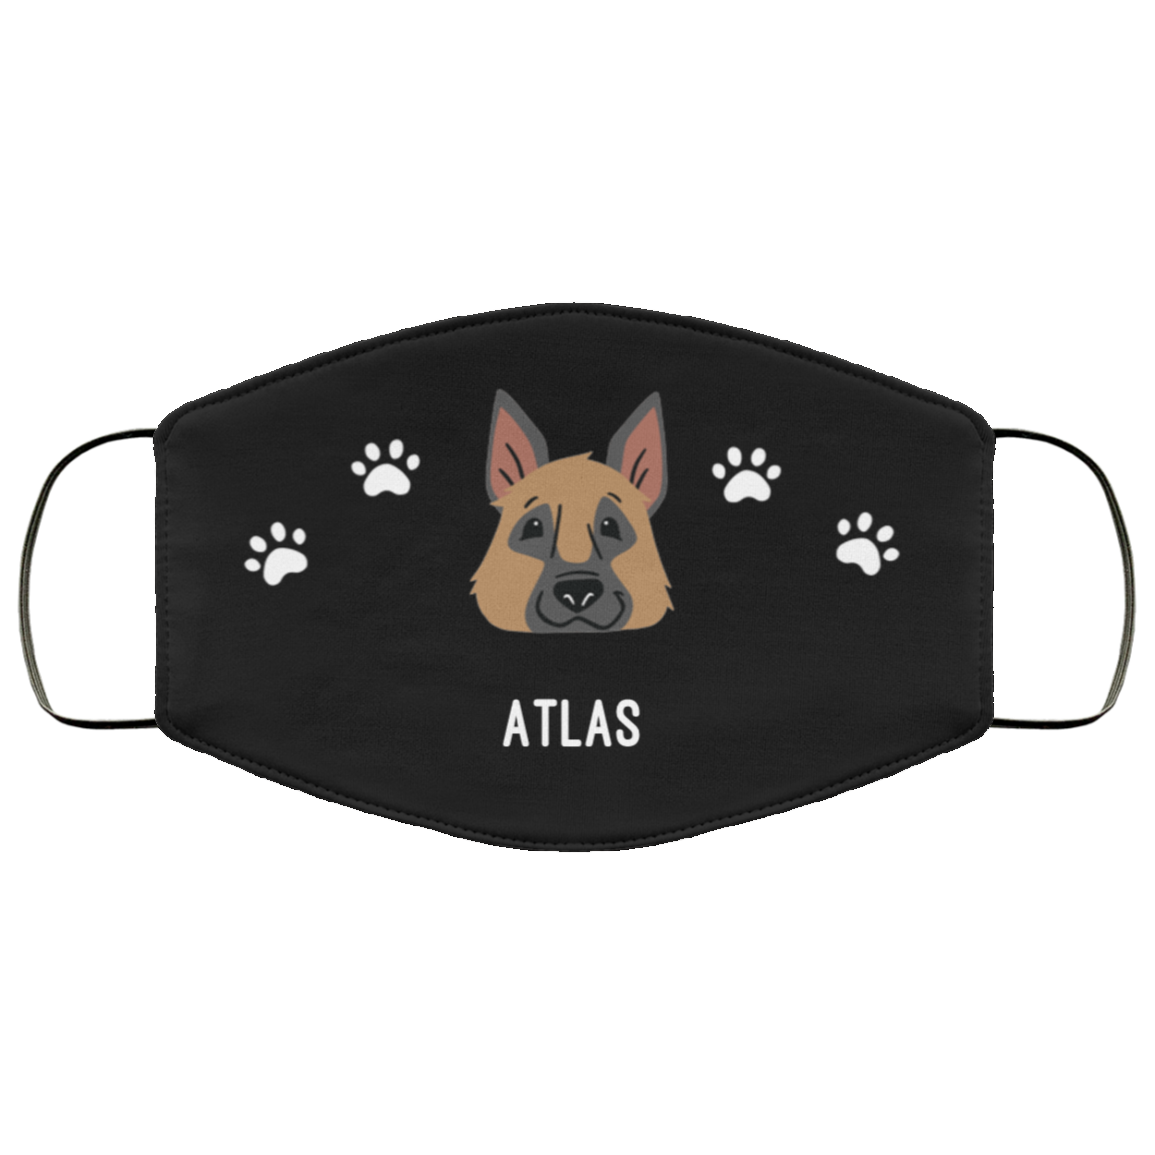 German Shepherd Personalized Protective Face Covering – Black